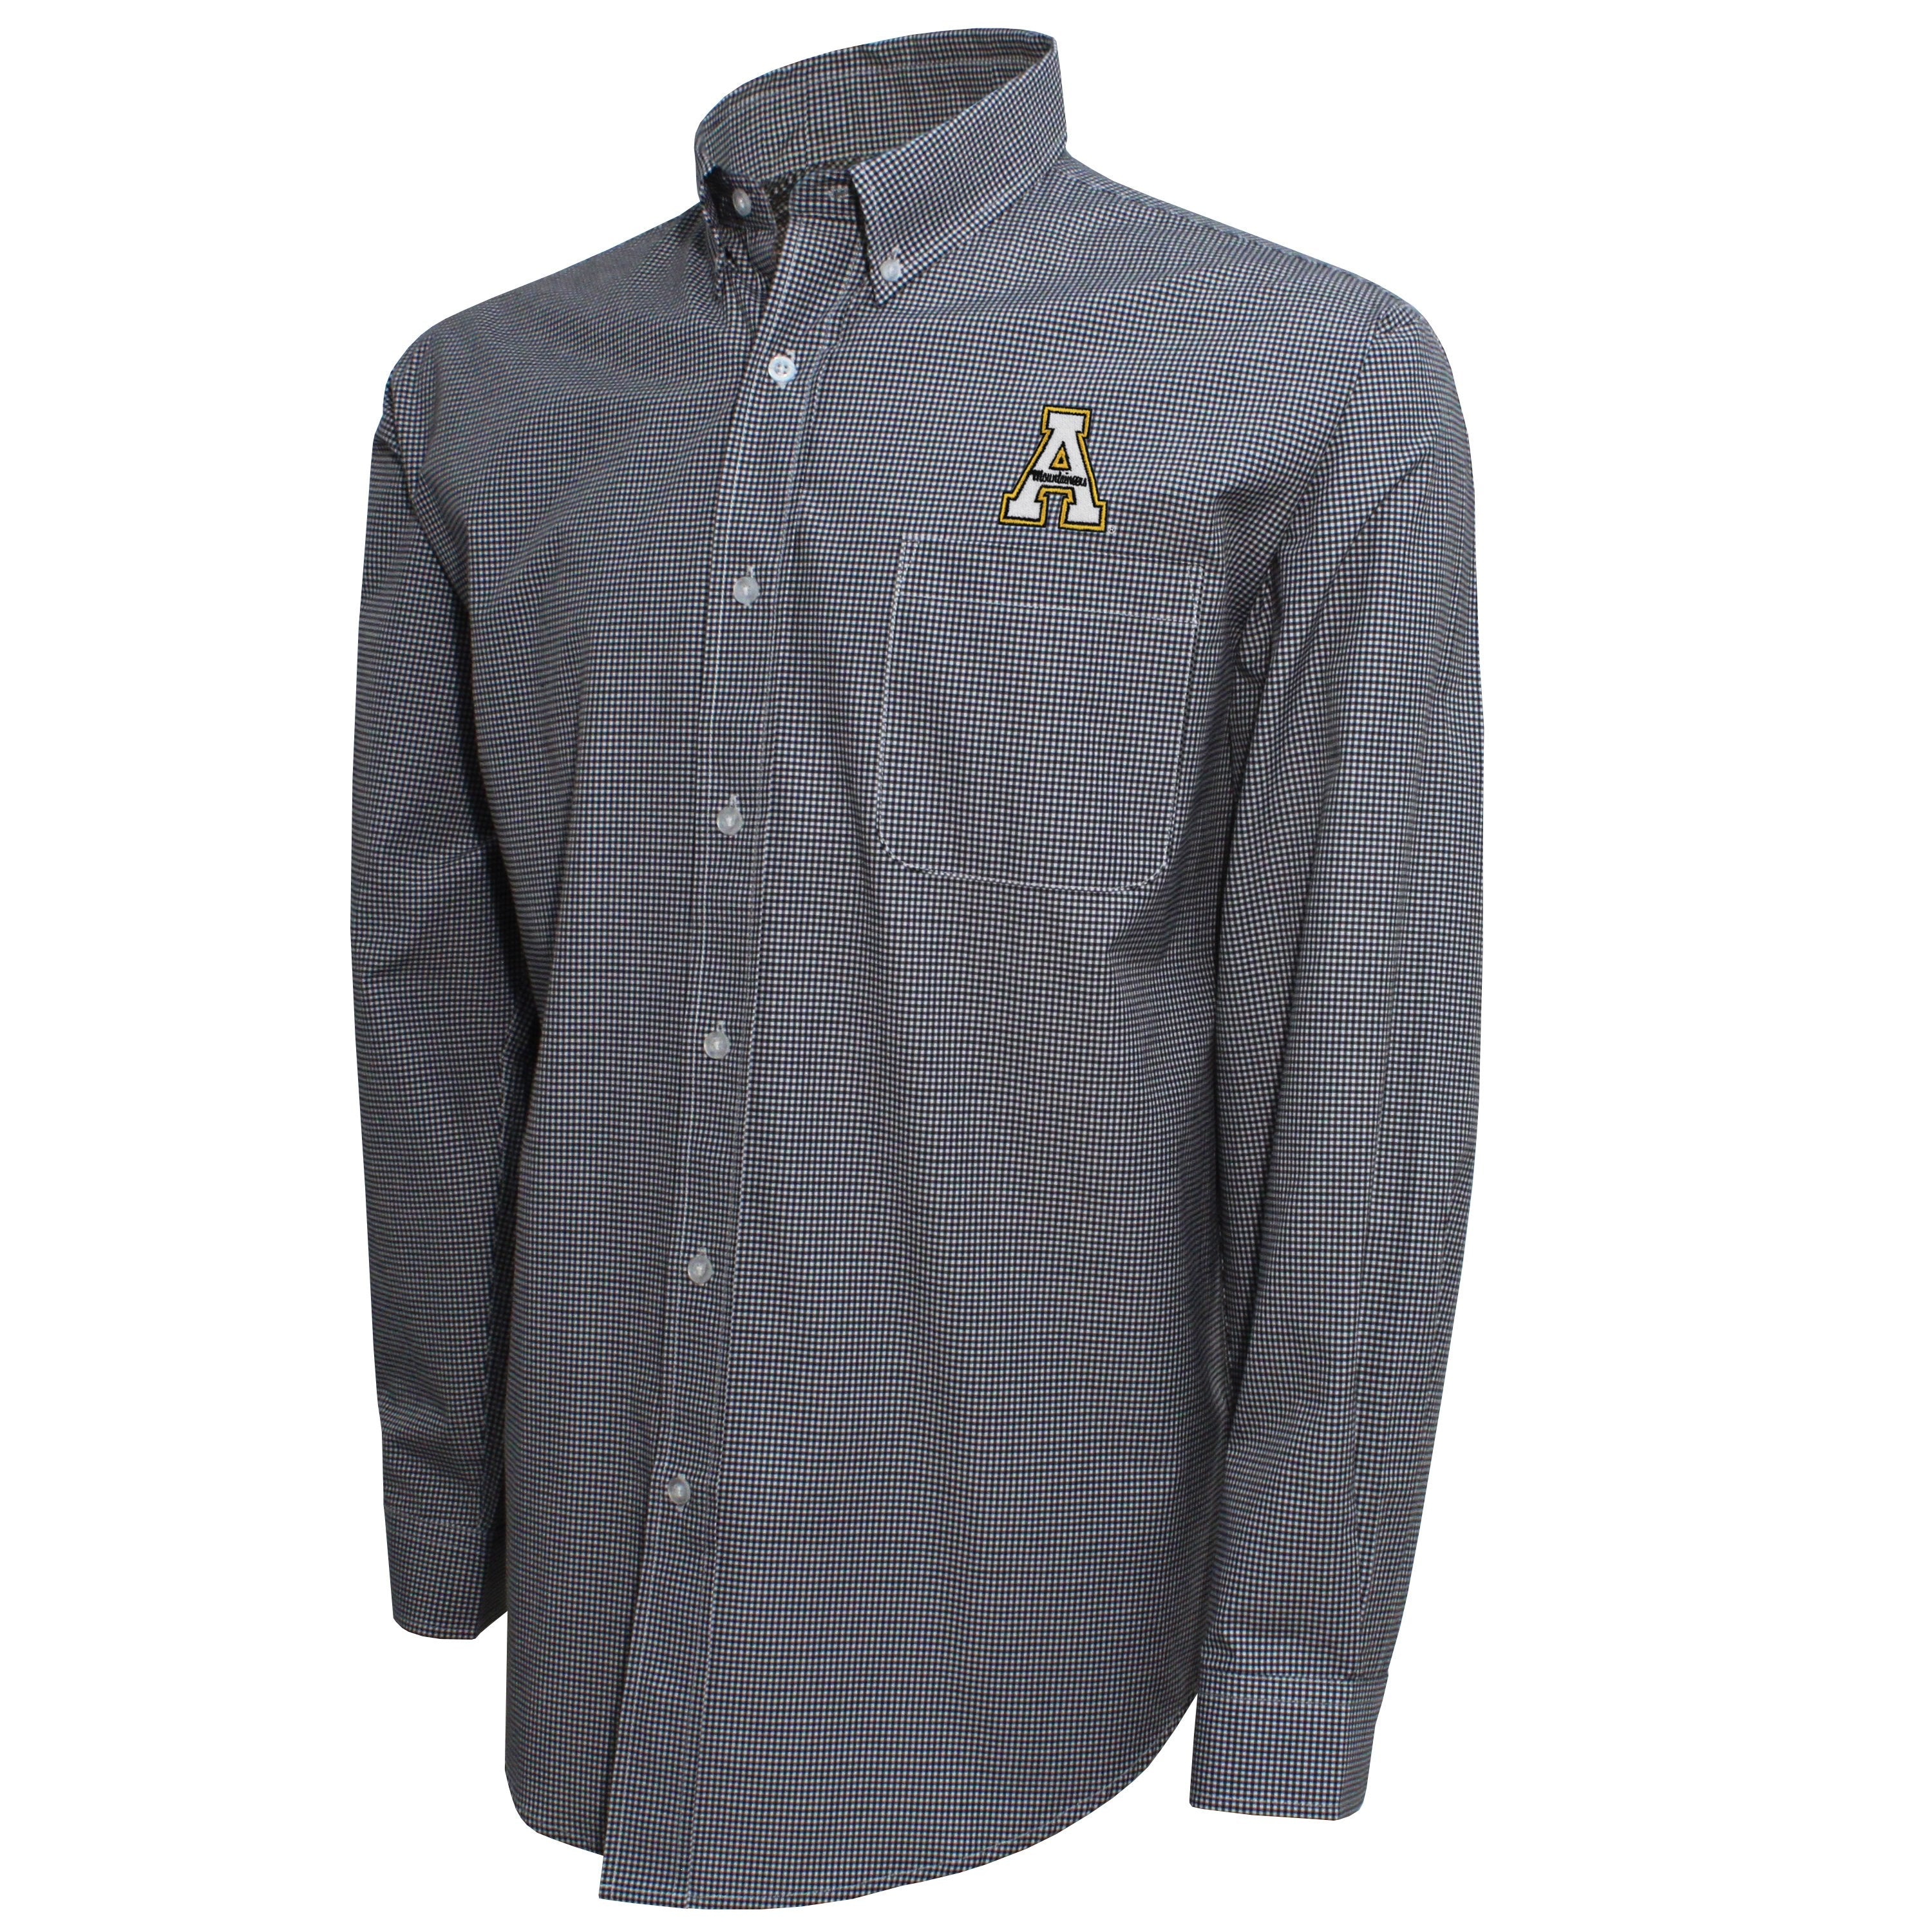 Campus Specialties Appalachian State Men's Black Shirt